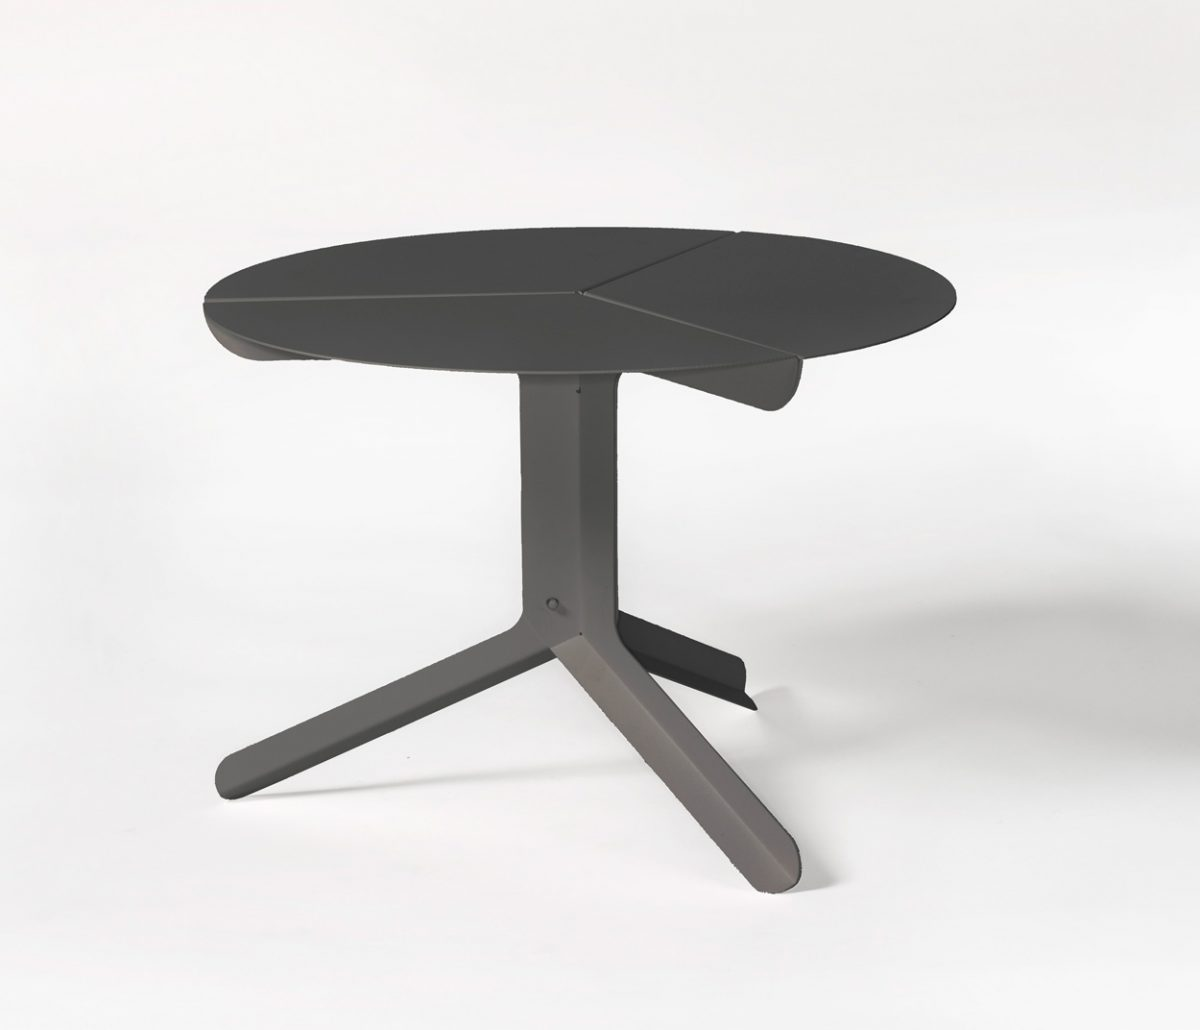 Frederik Roije for New Duivendrecht sliced table low bijzettafel zwart – gimmii shop Dutch design